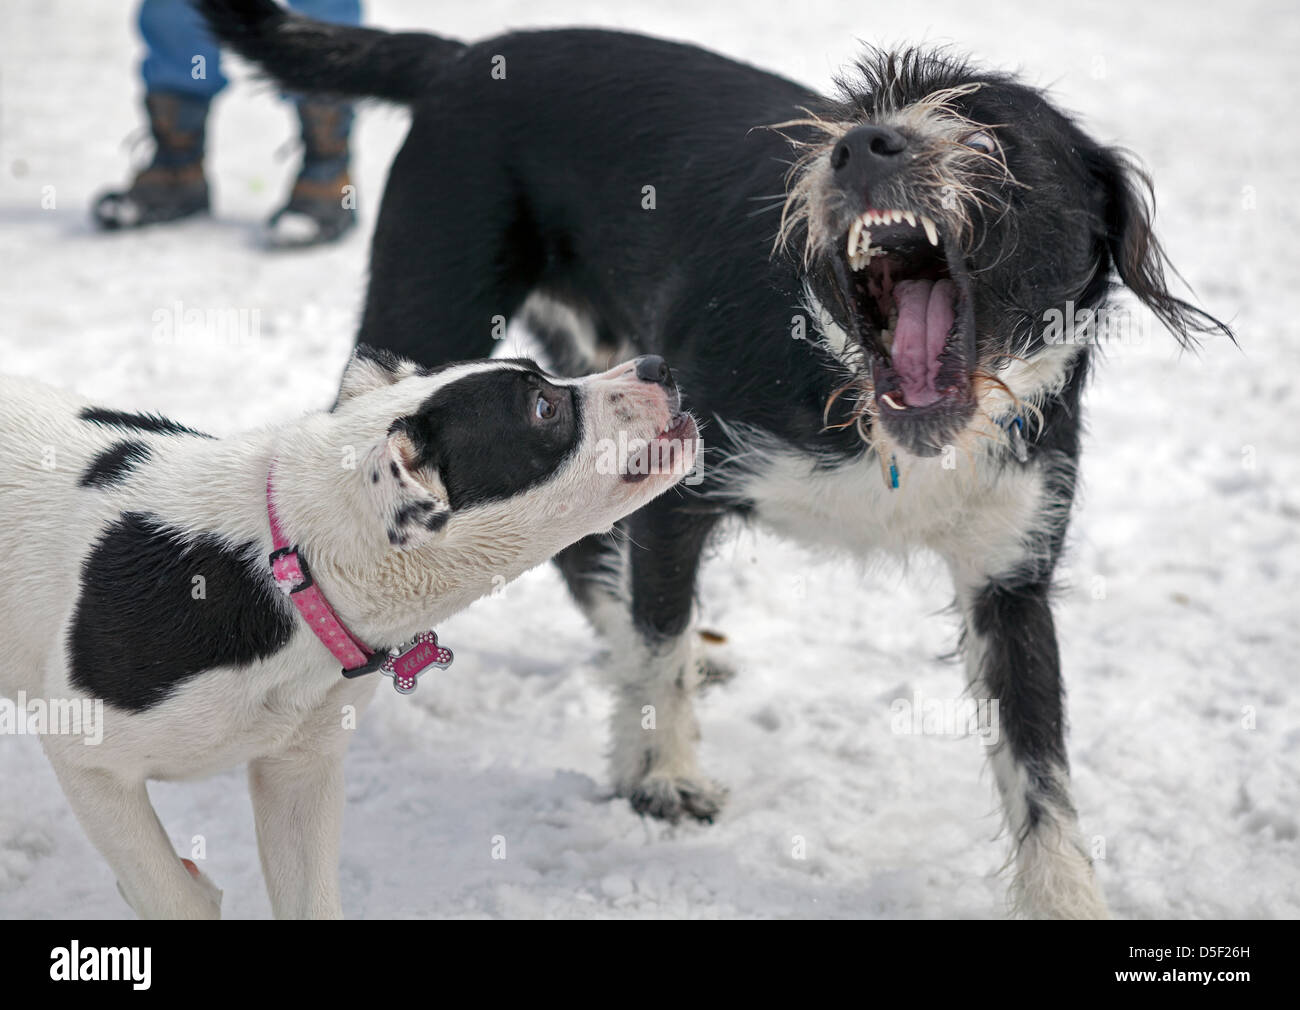 Dogs play in a fenced in area at a local dog park in Minneapolis. - Stock Image